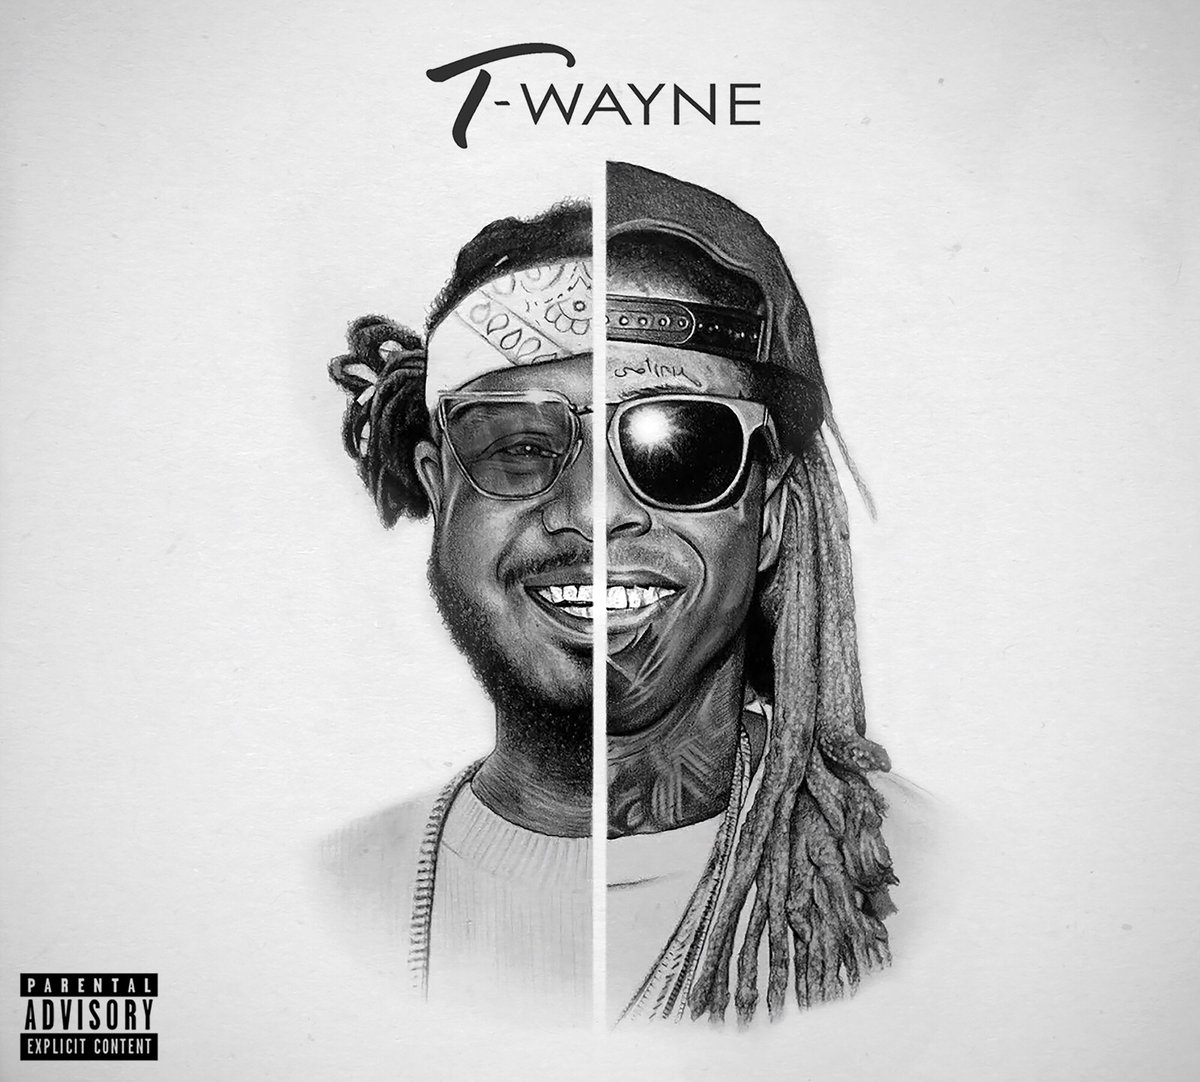 .@TPAIN and Lil' Wayne open the vault and drop their #TWayne album. Stream now! https://t.co/v3KQCzyVa0  ������ https://t.co/TYTuAQc3MI